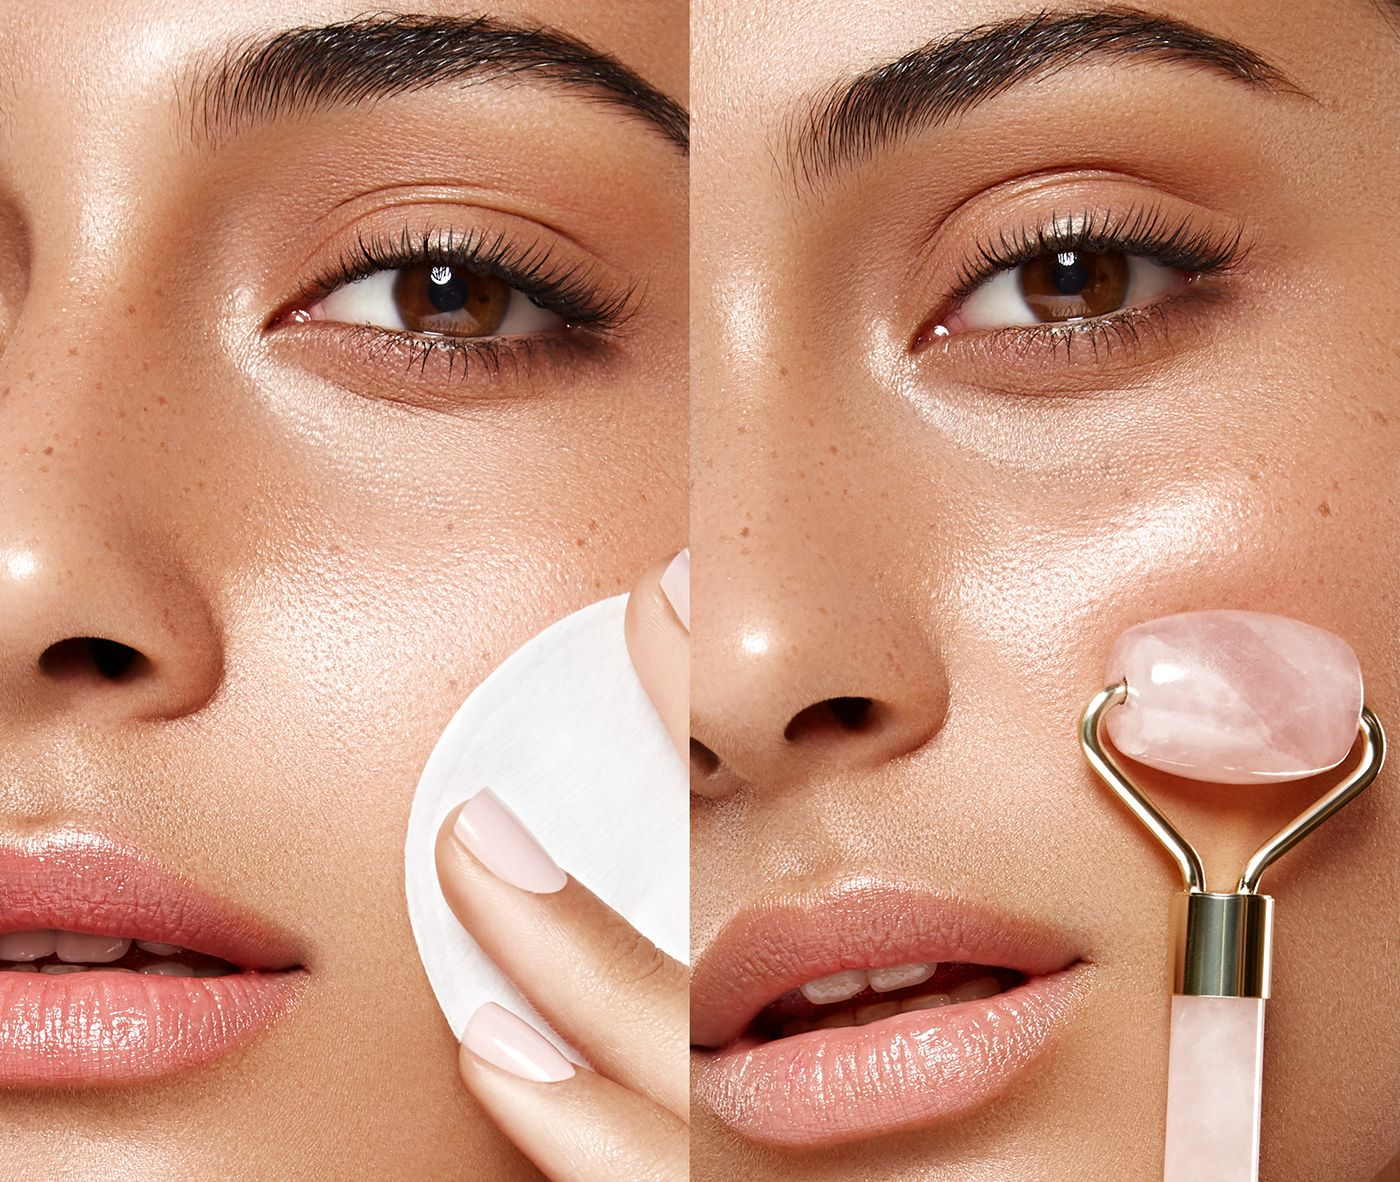 SKIN CARE AD SHOOT on Behance